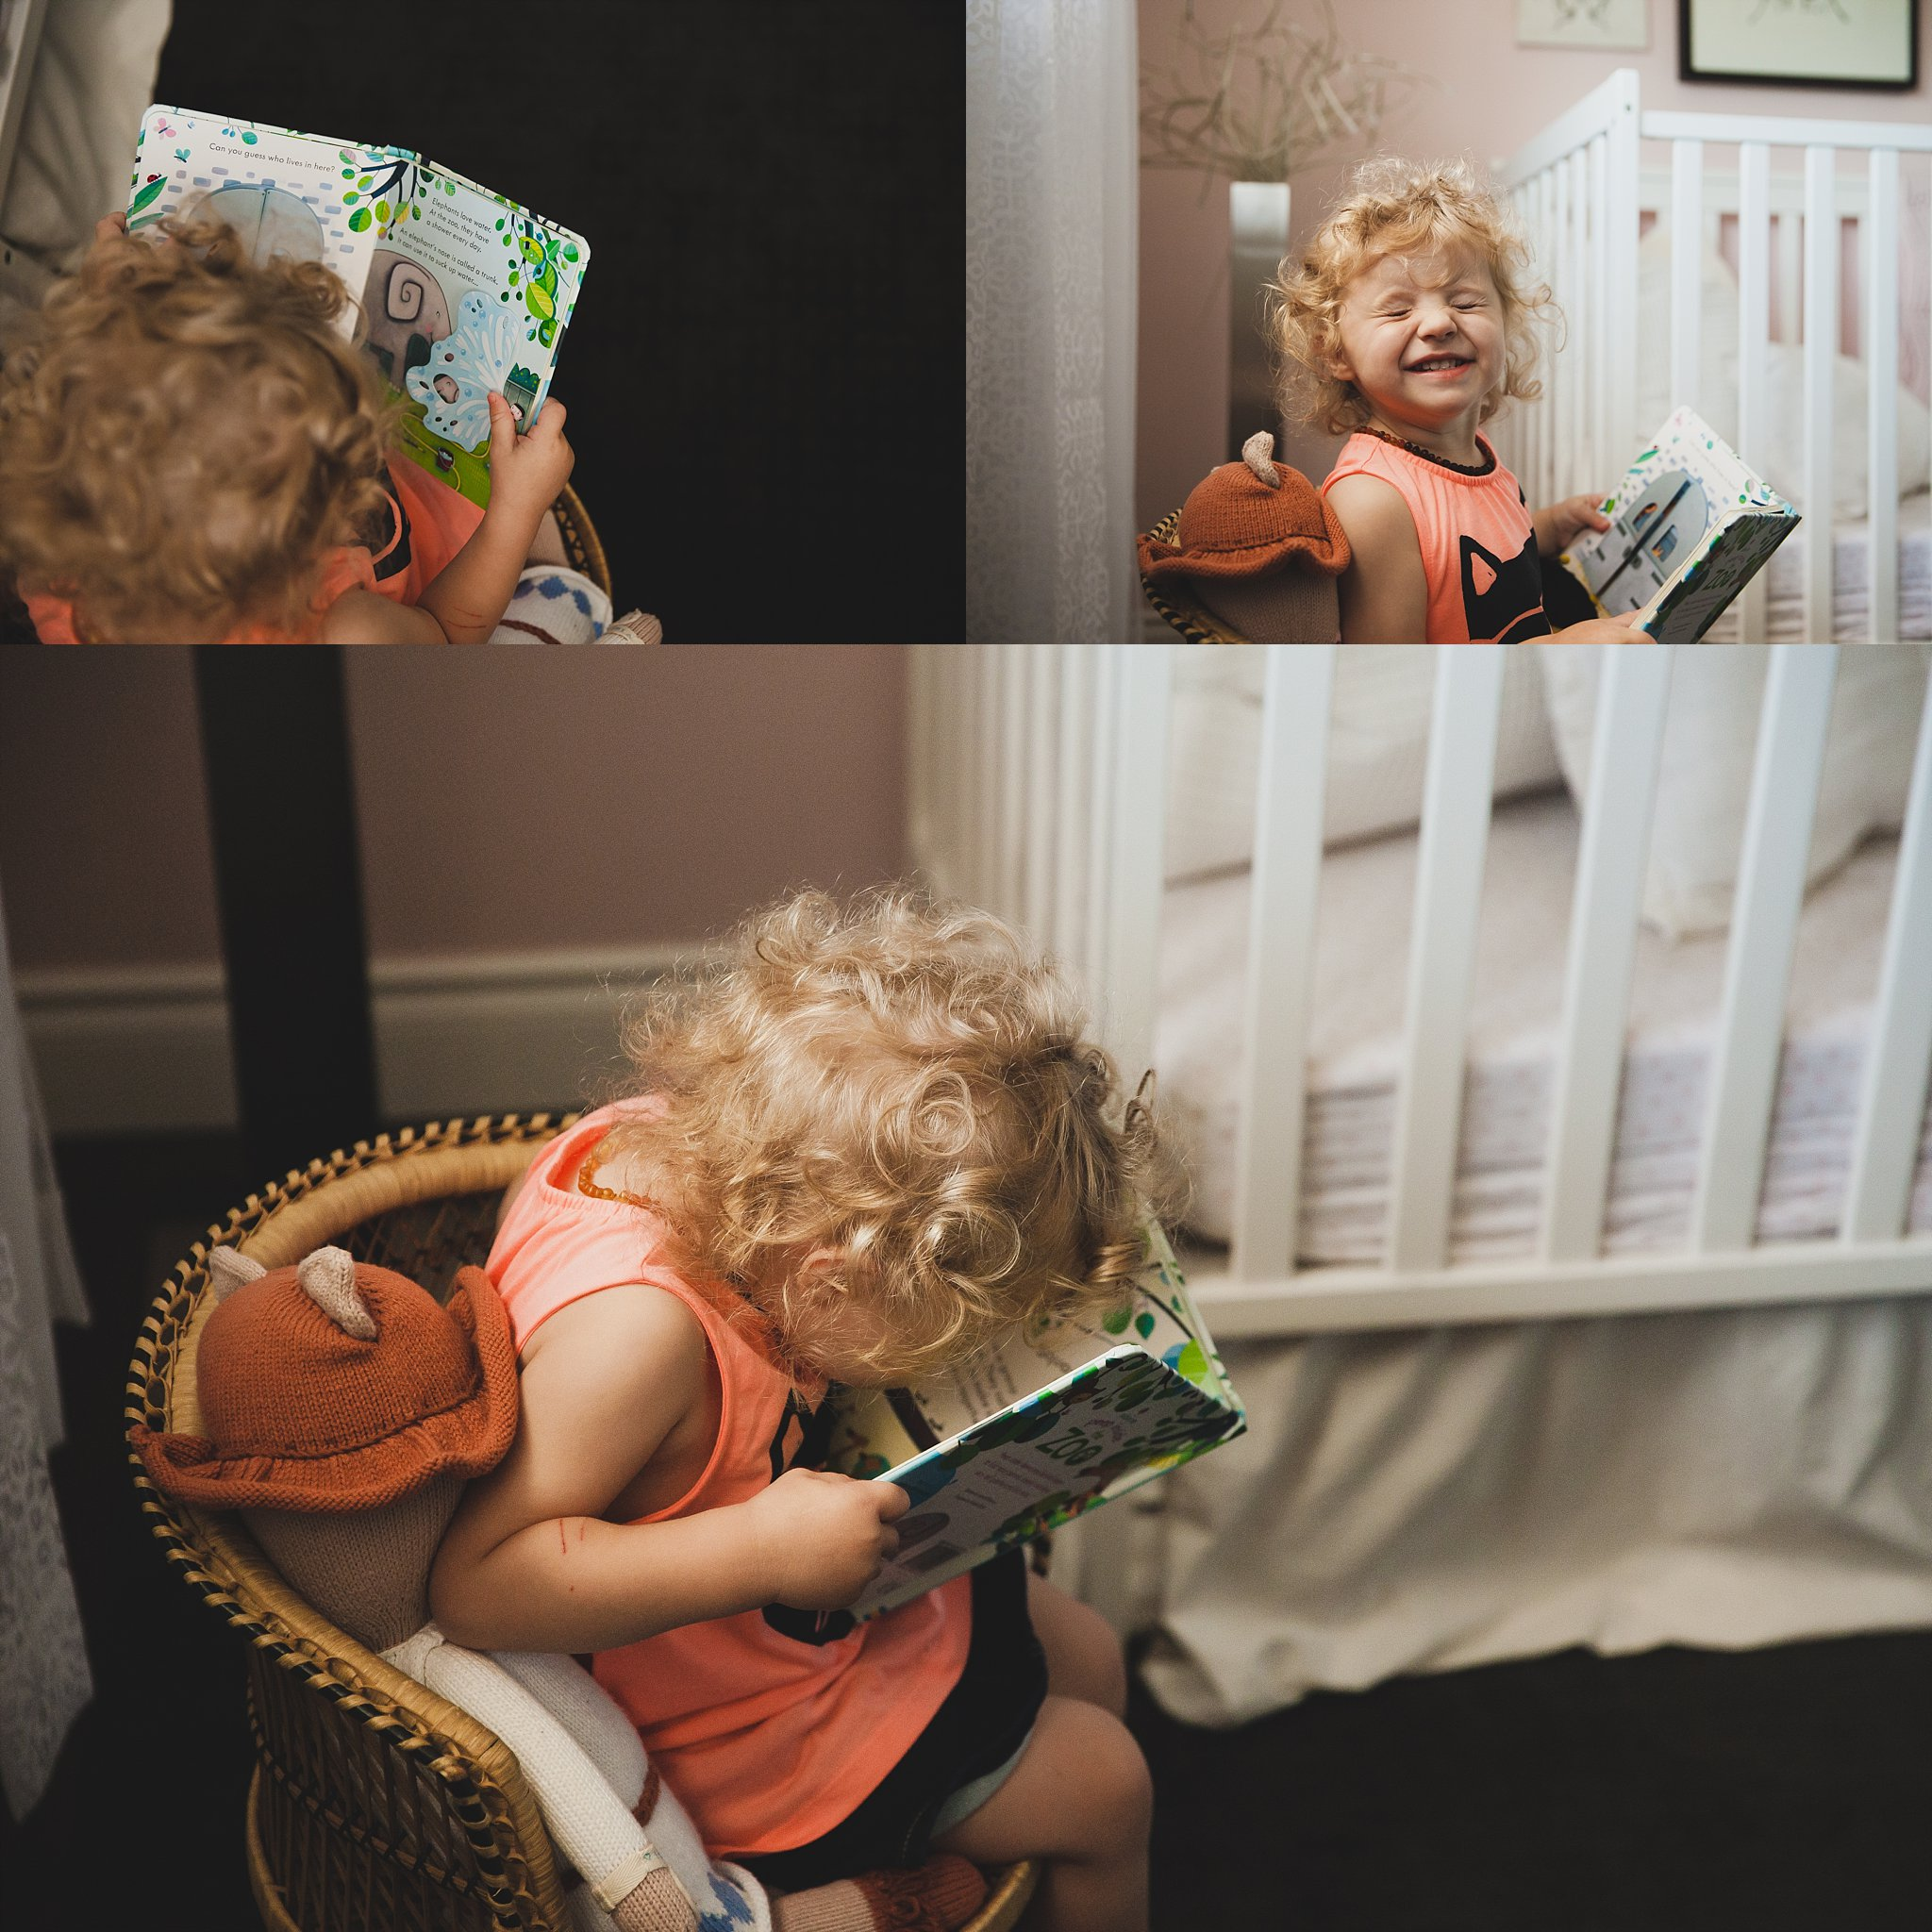 Adorable baby girl reading a book in her room.